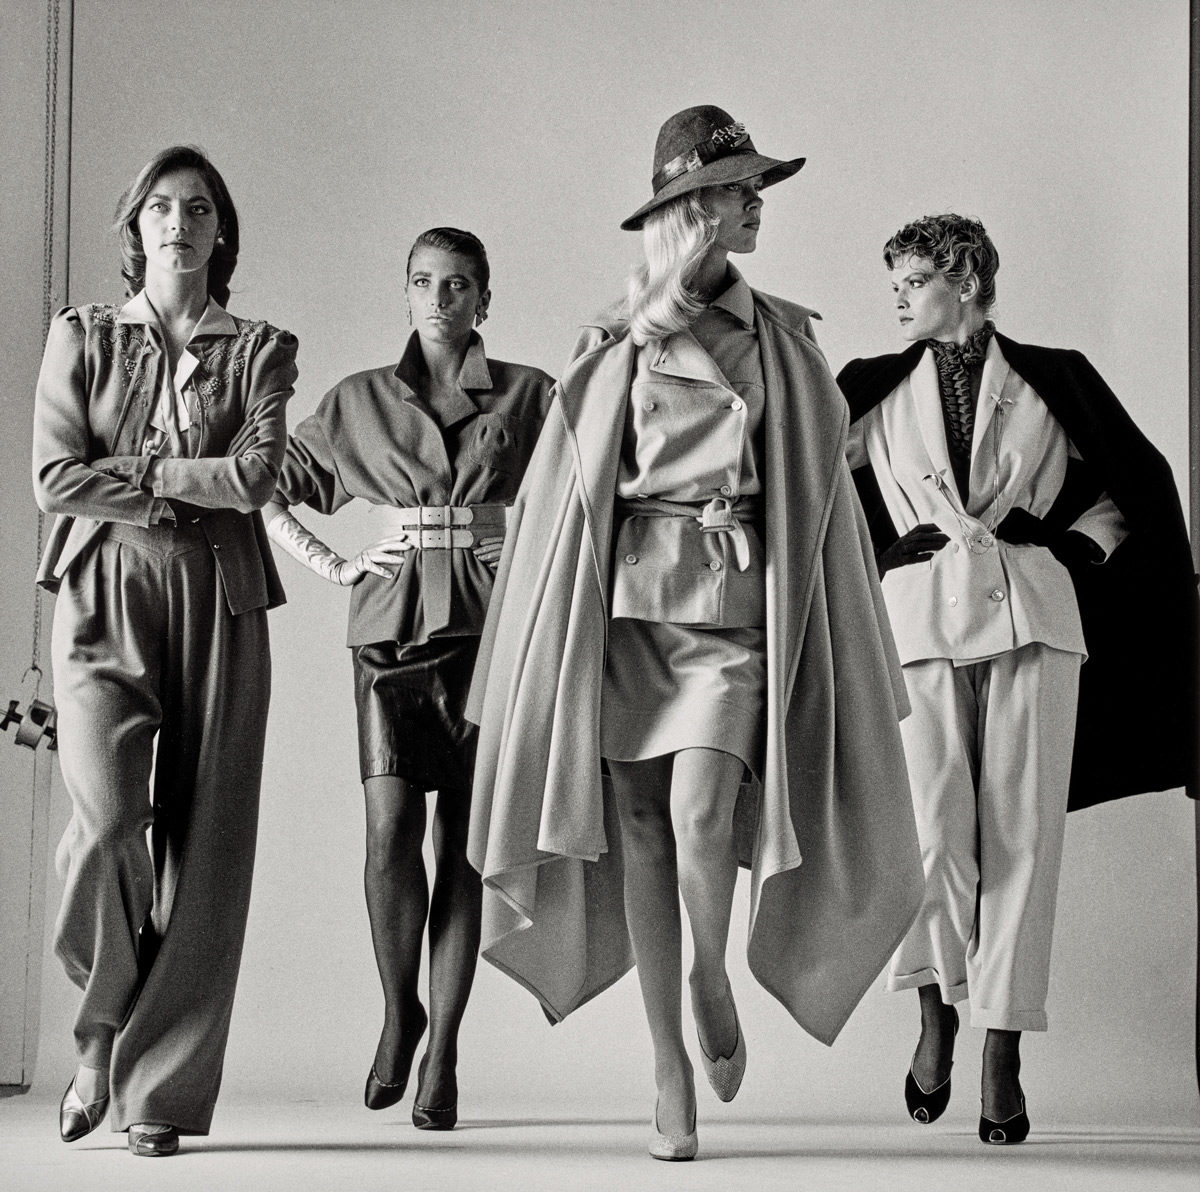 © The Museum of Fine Arts, Houston, gift of Manfred Heiting, the Manfred Heiting Collection / Helmut Newton and Alice Springs